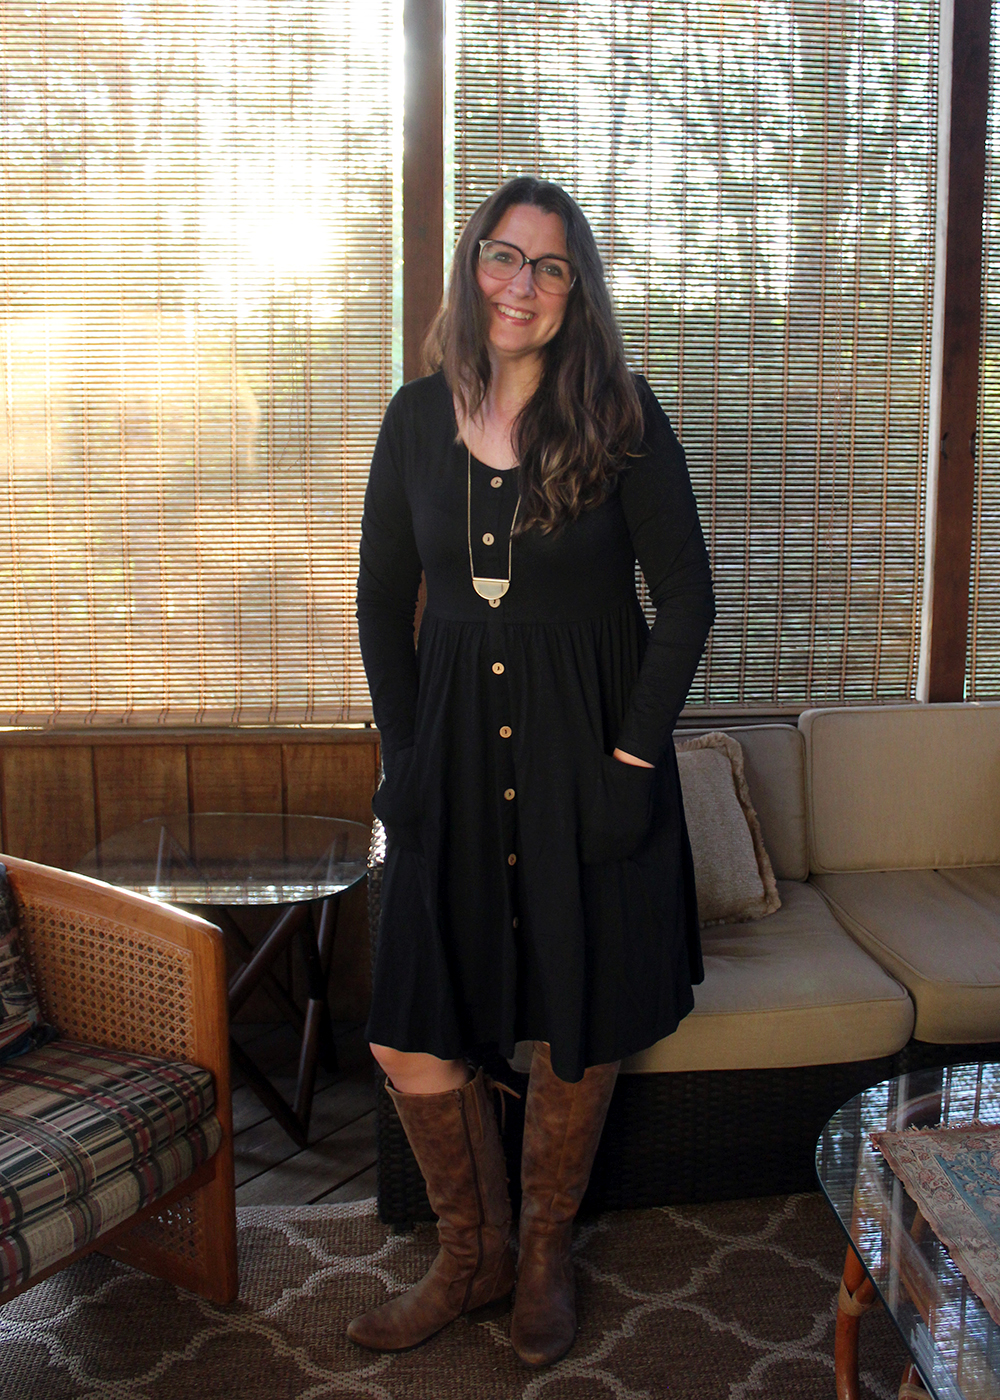 Black Button Dress for under $25. Fall fashion ideas